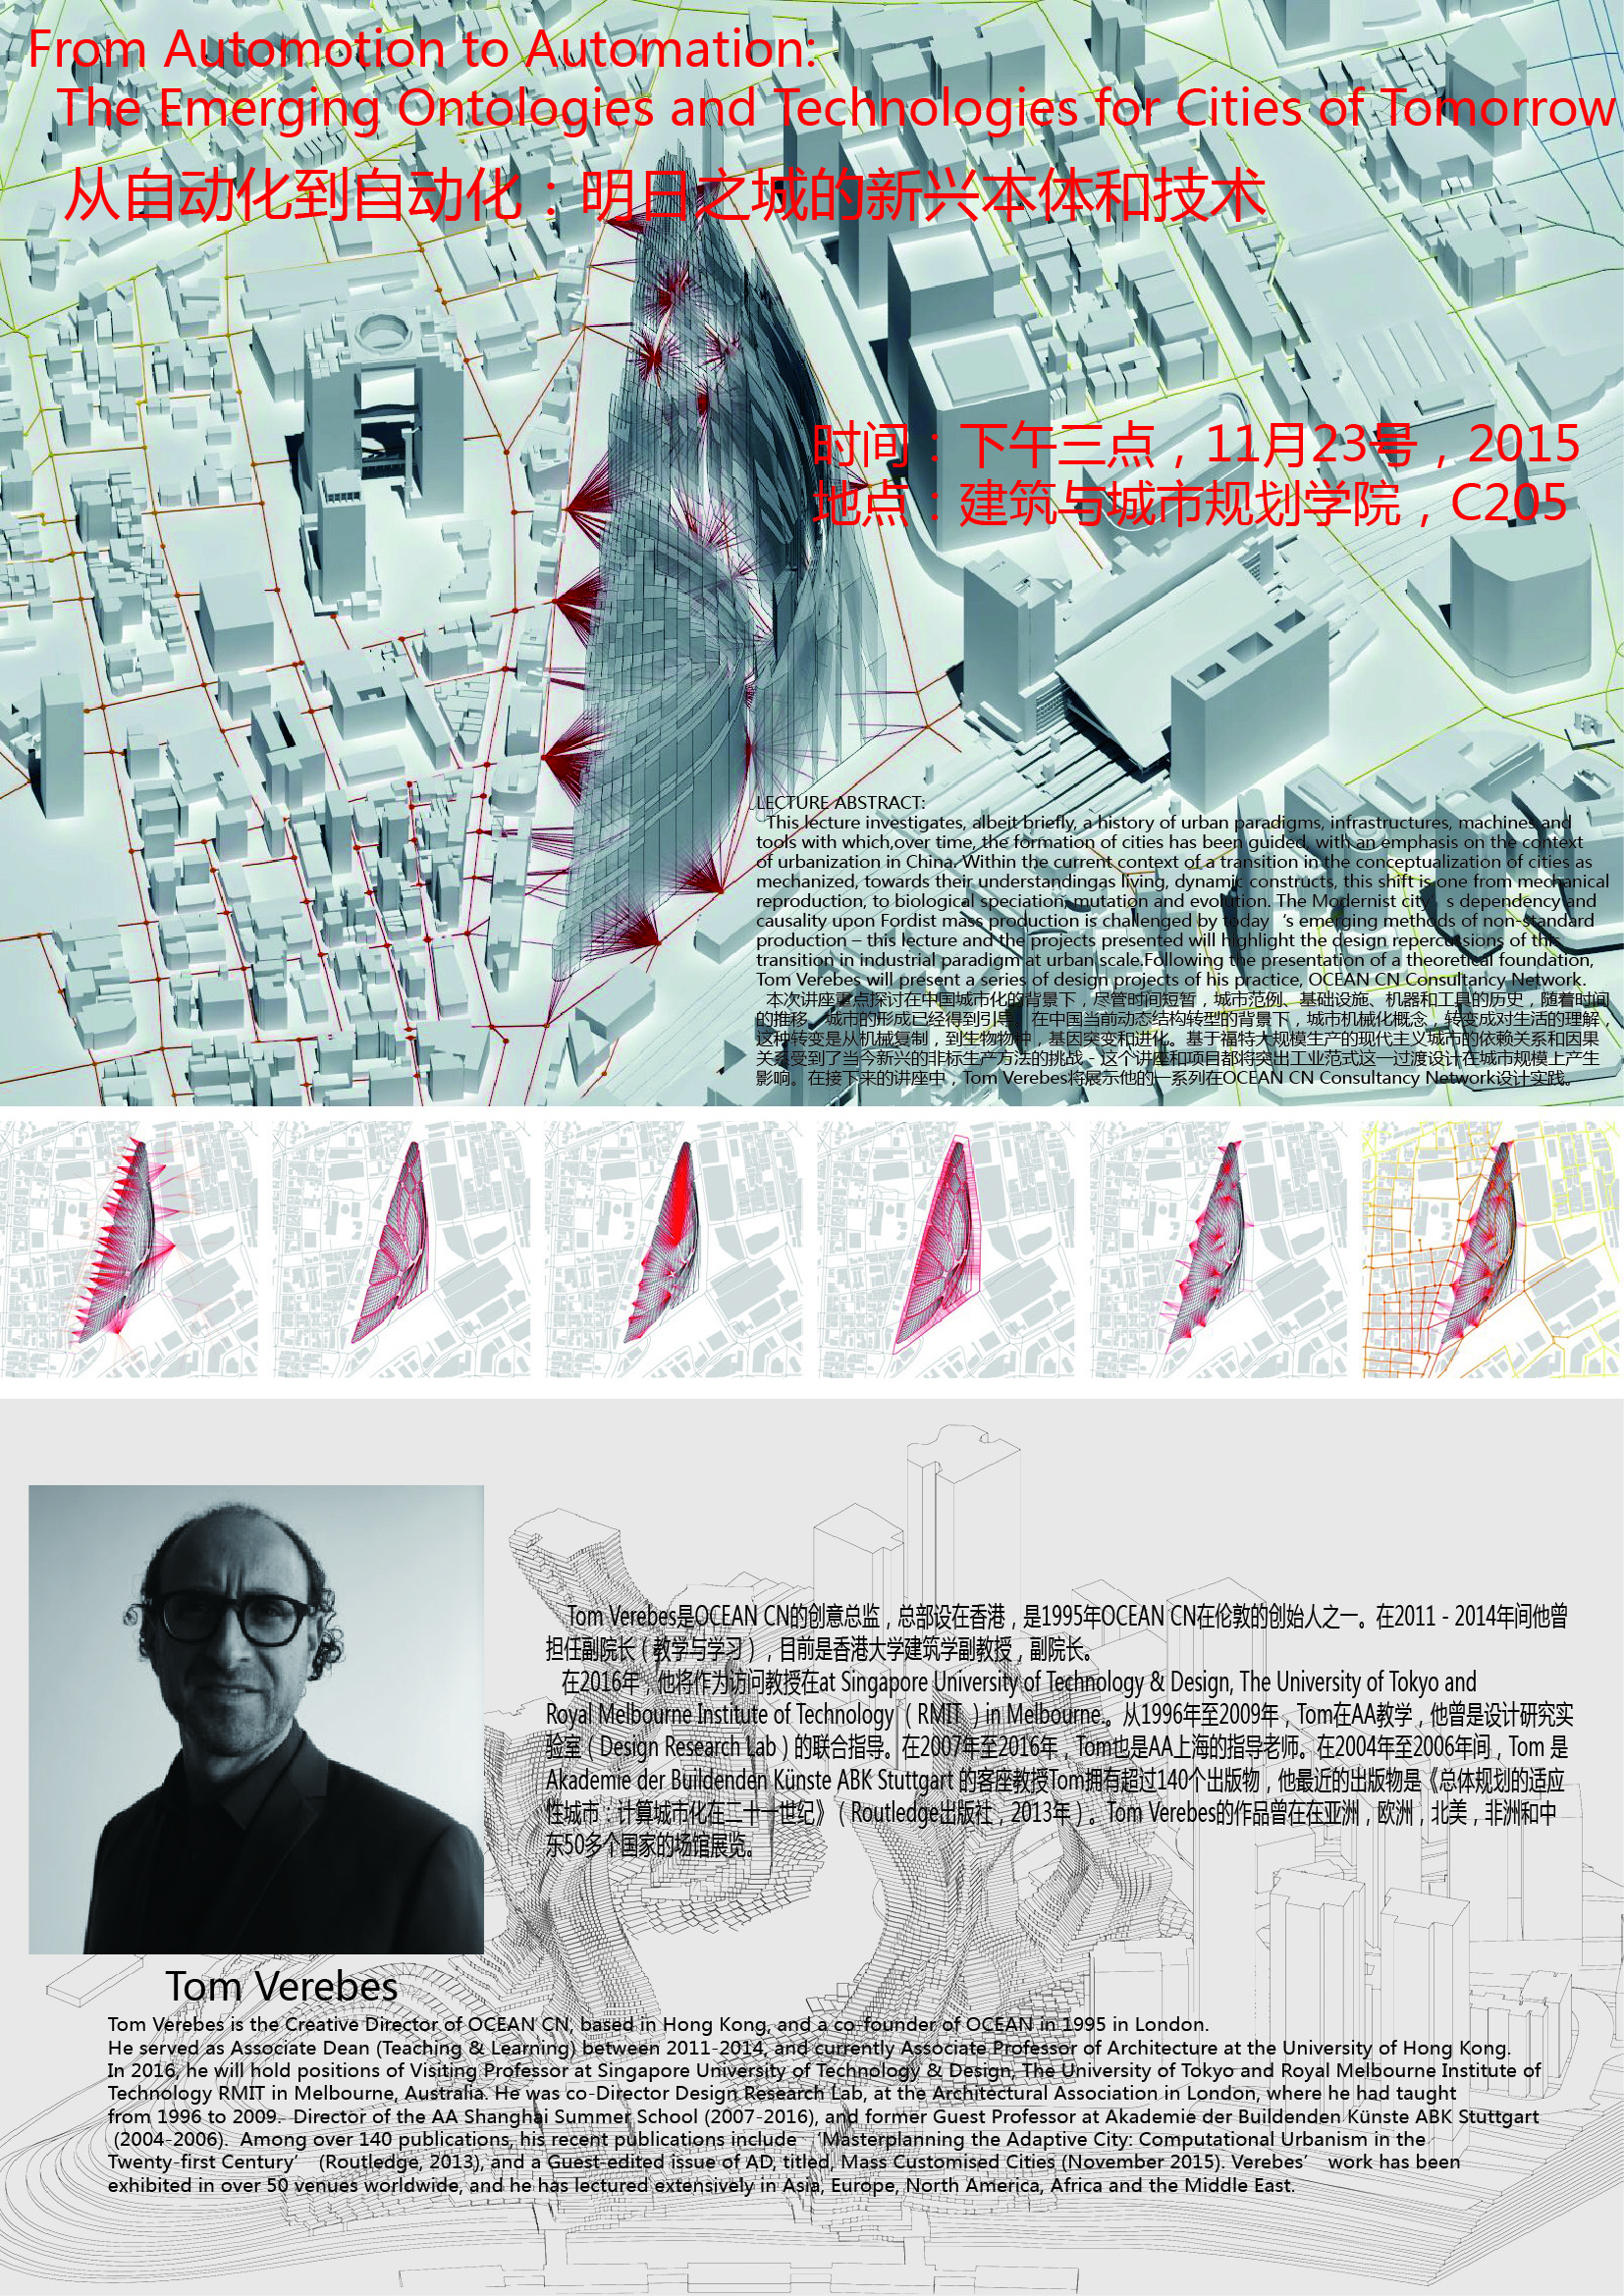 Tom Verebes lecturing at Shenzhen University College of Architecture & Urban Planning